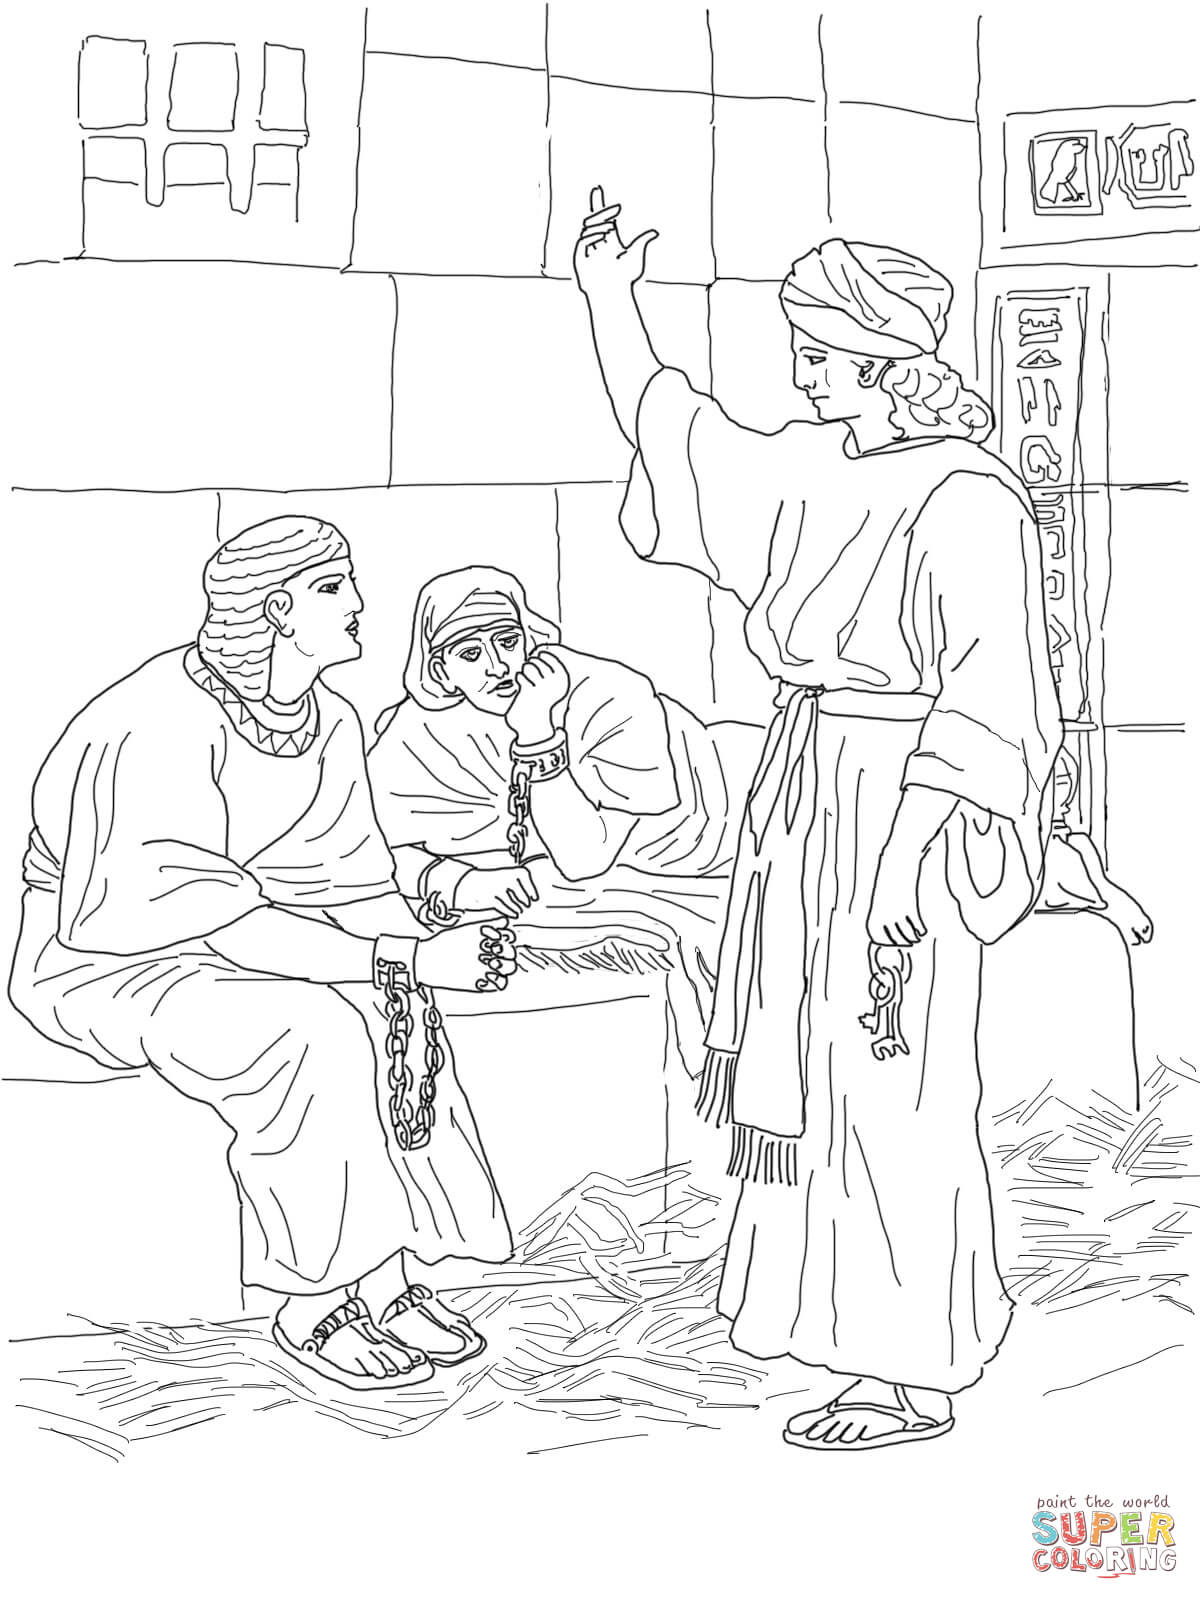 bible coloring pages for peter's escape from jail | Angel Coloring ... | 1600x1200